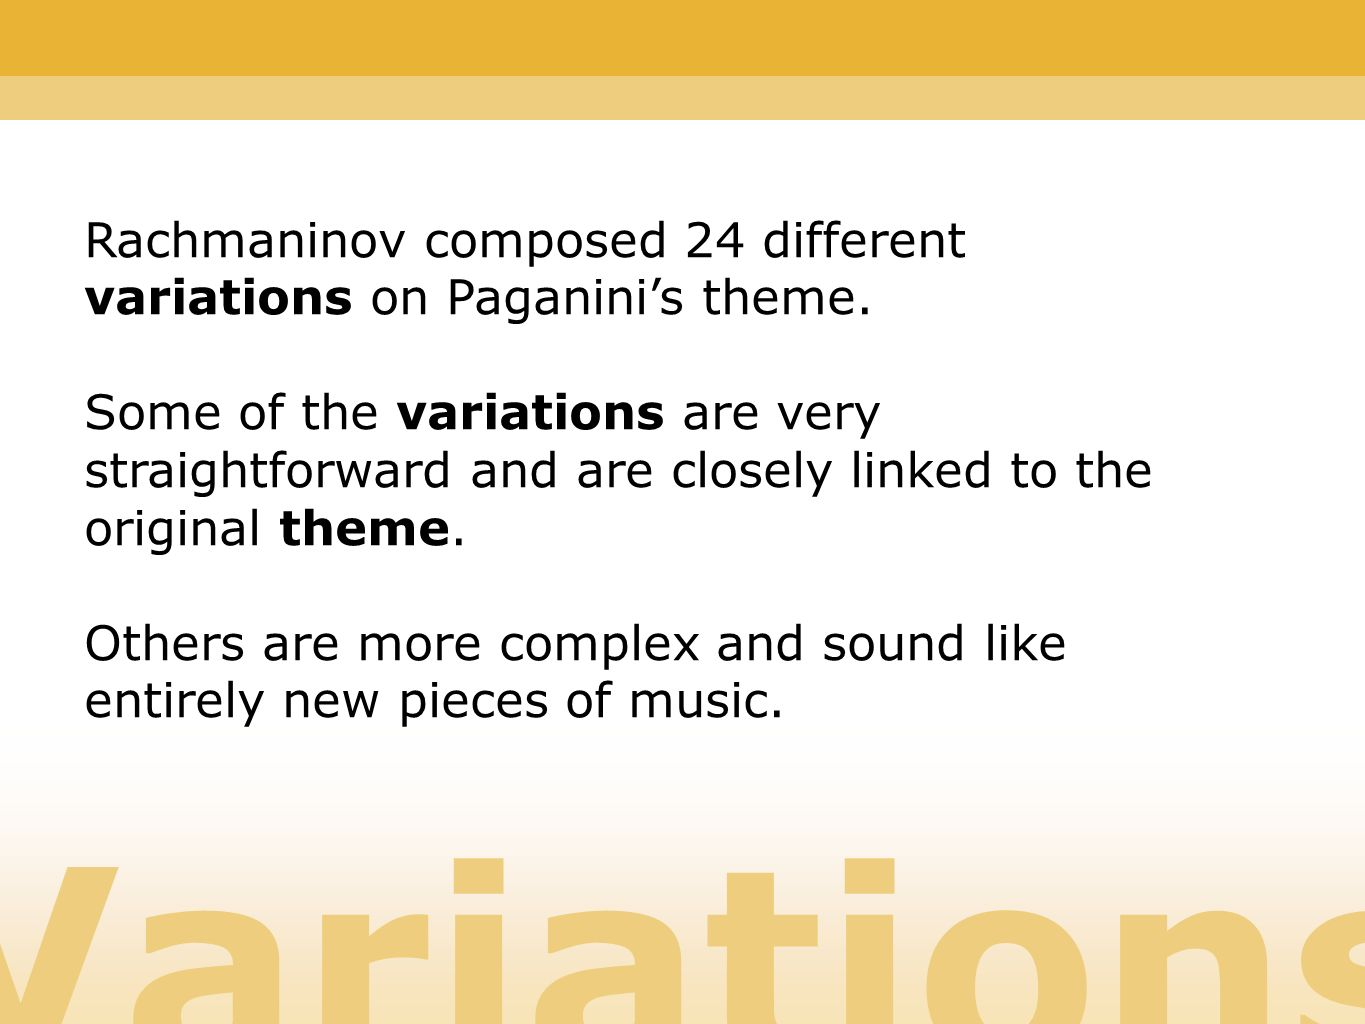 Variations Rachmaninov composed 24 different variations on Paganinis theme. Some of the variations are very straightforward and are closely linked to